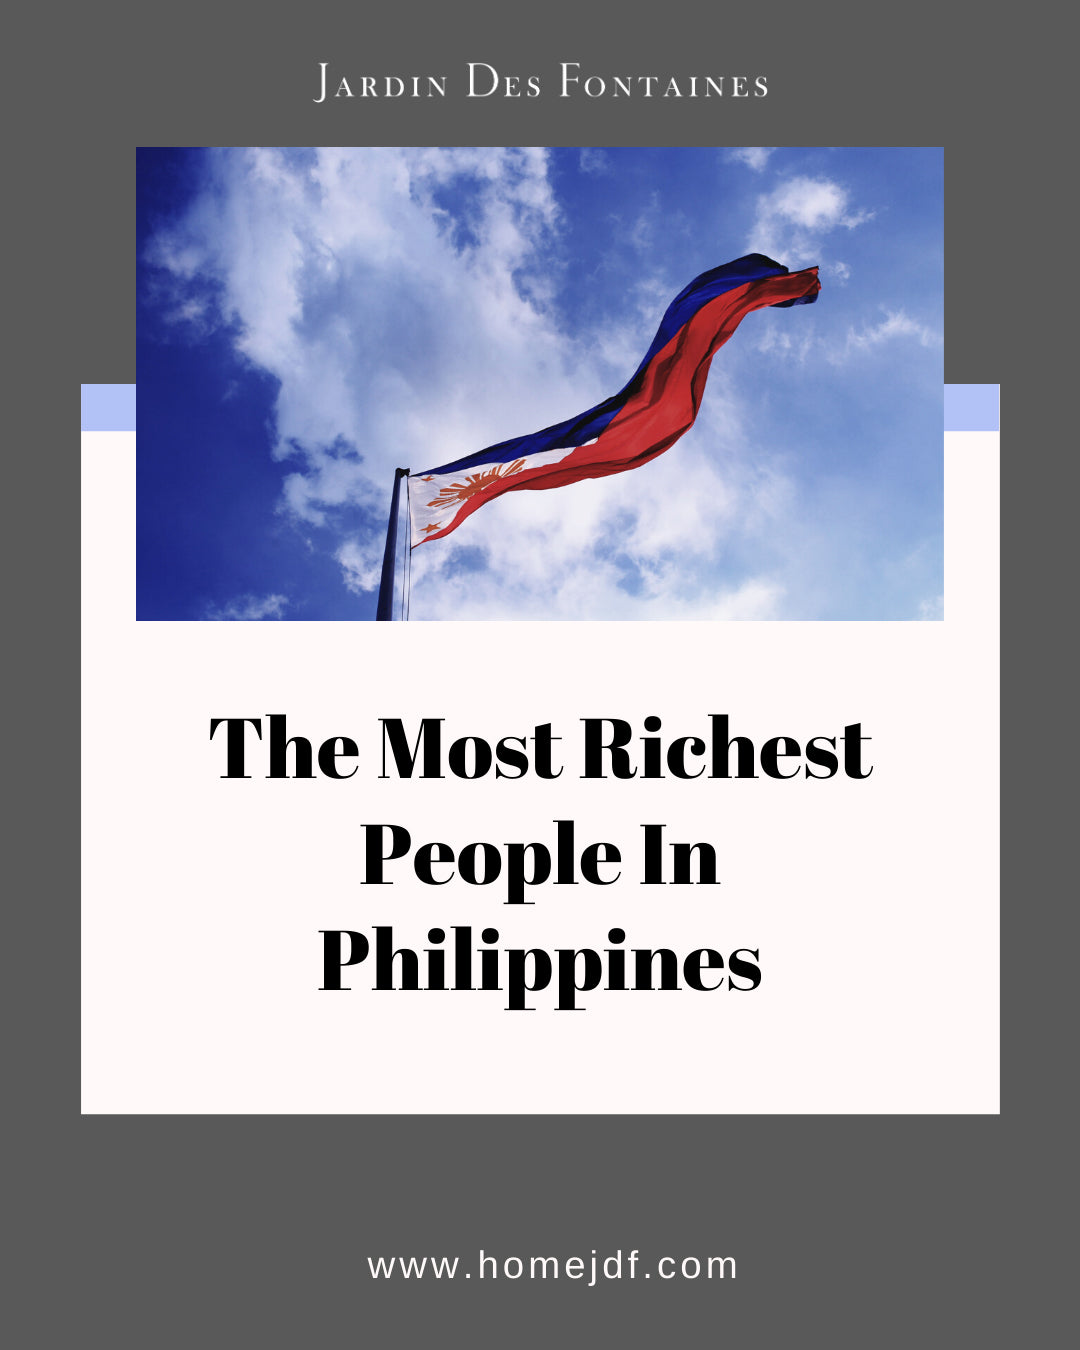 The Most Richest People In Philippines